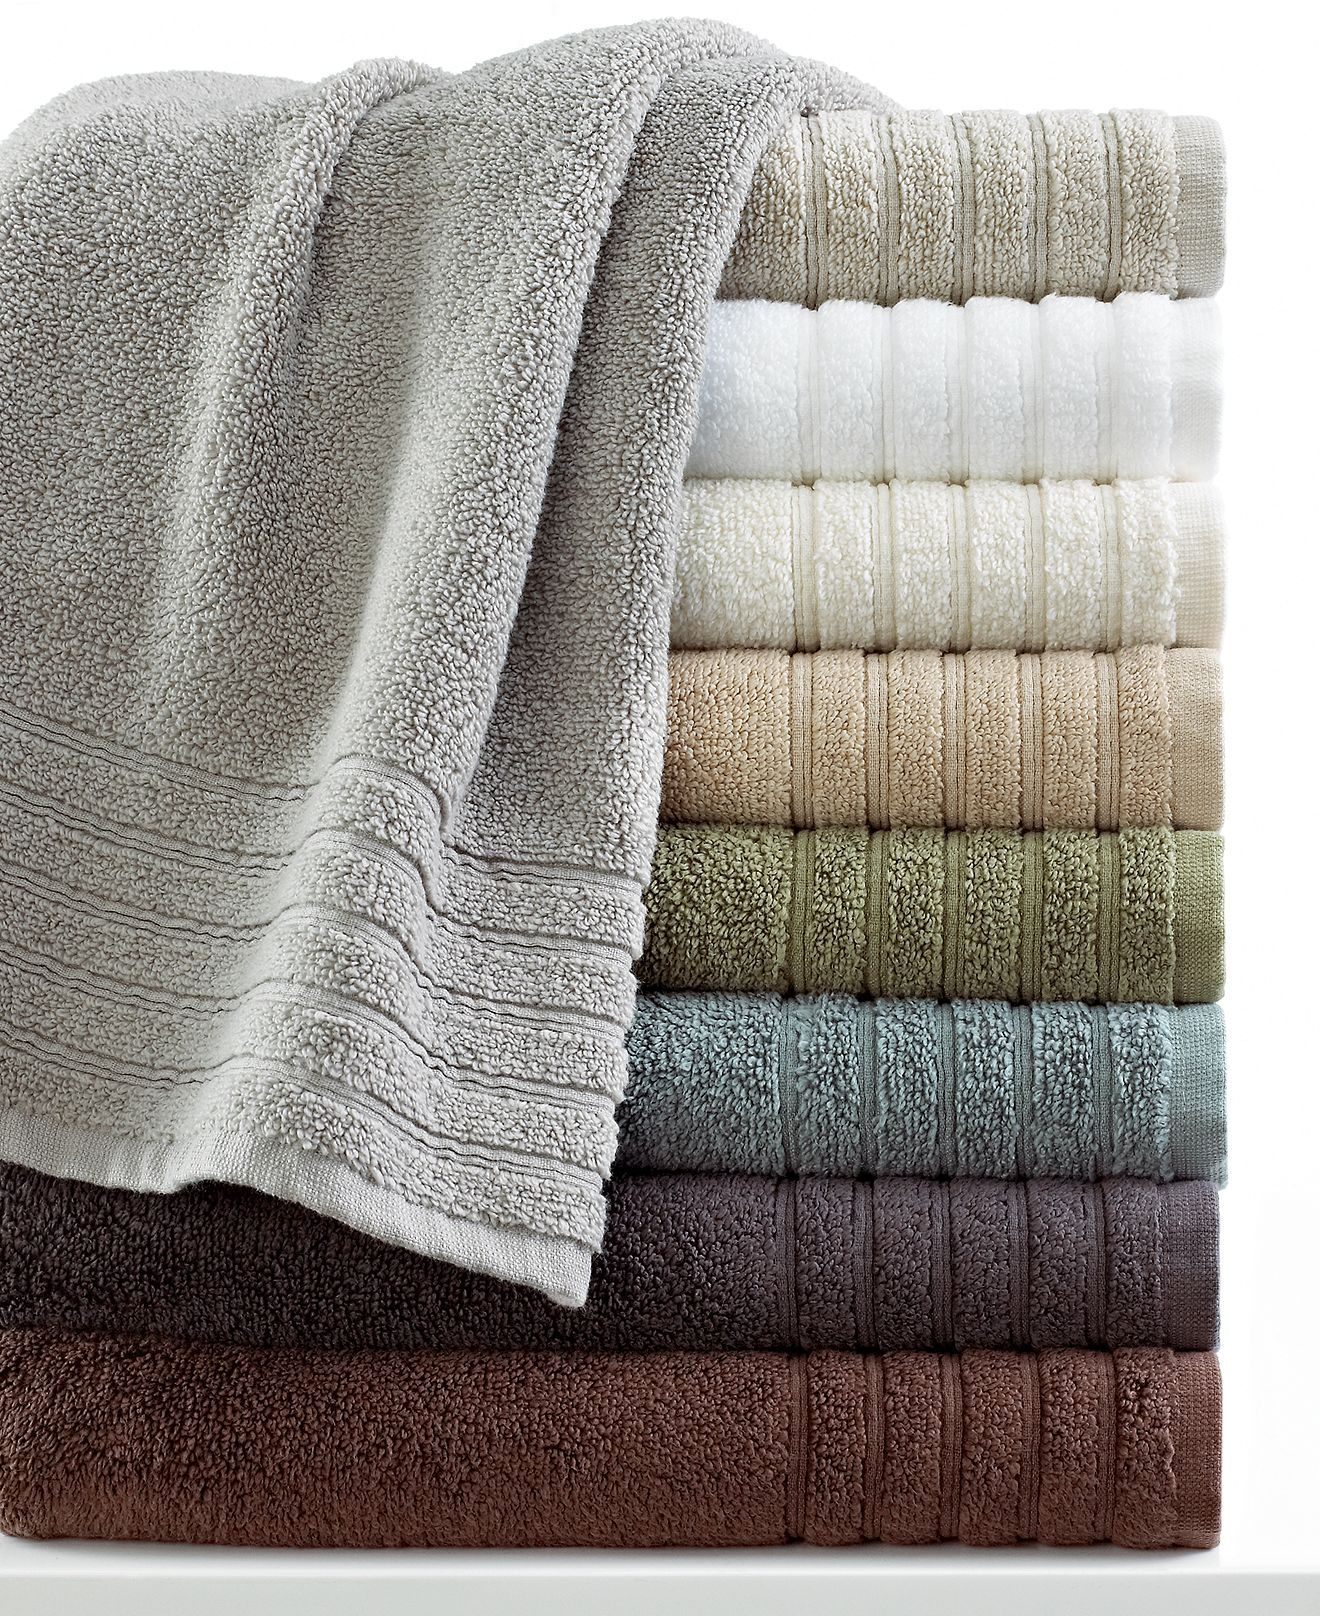 Macys Bath Towels Captivating Hotel Collection Bath Towels Microcotton Collection  Bath Towels Decorating Design